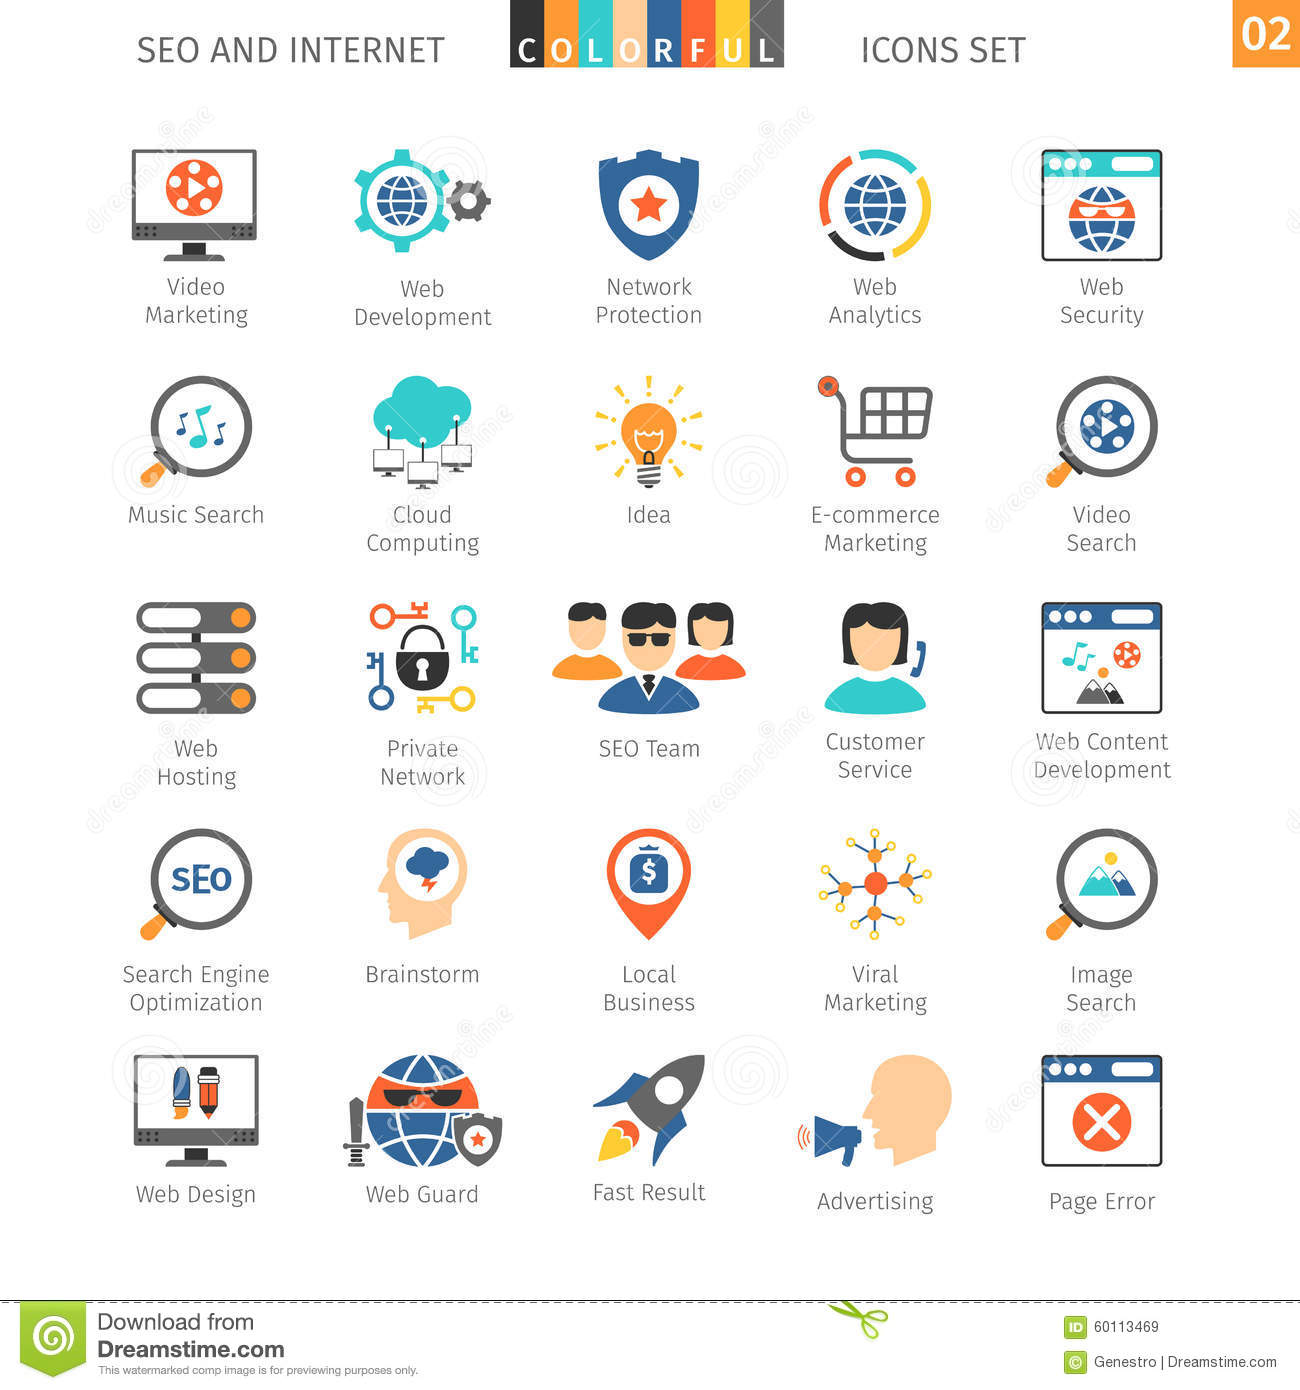 SEO Colorful Icon Set 02